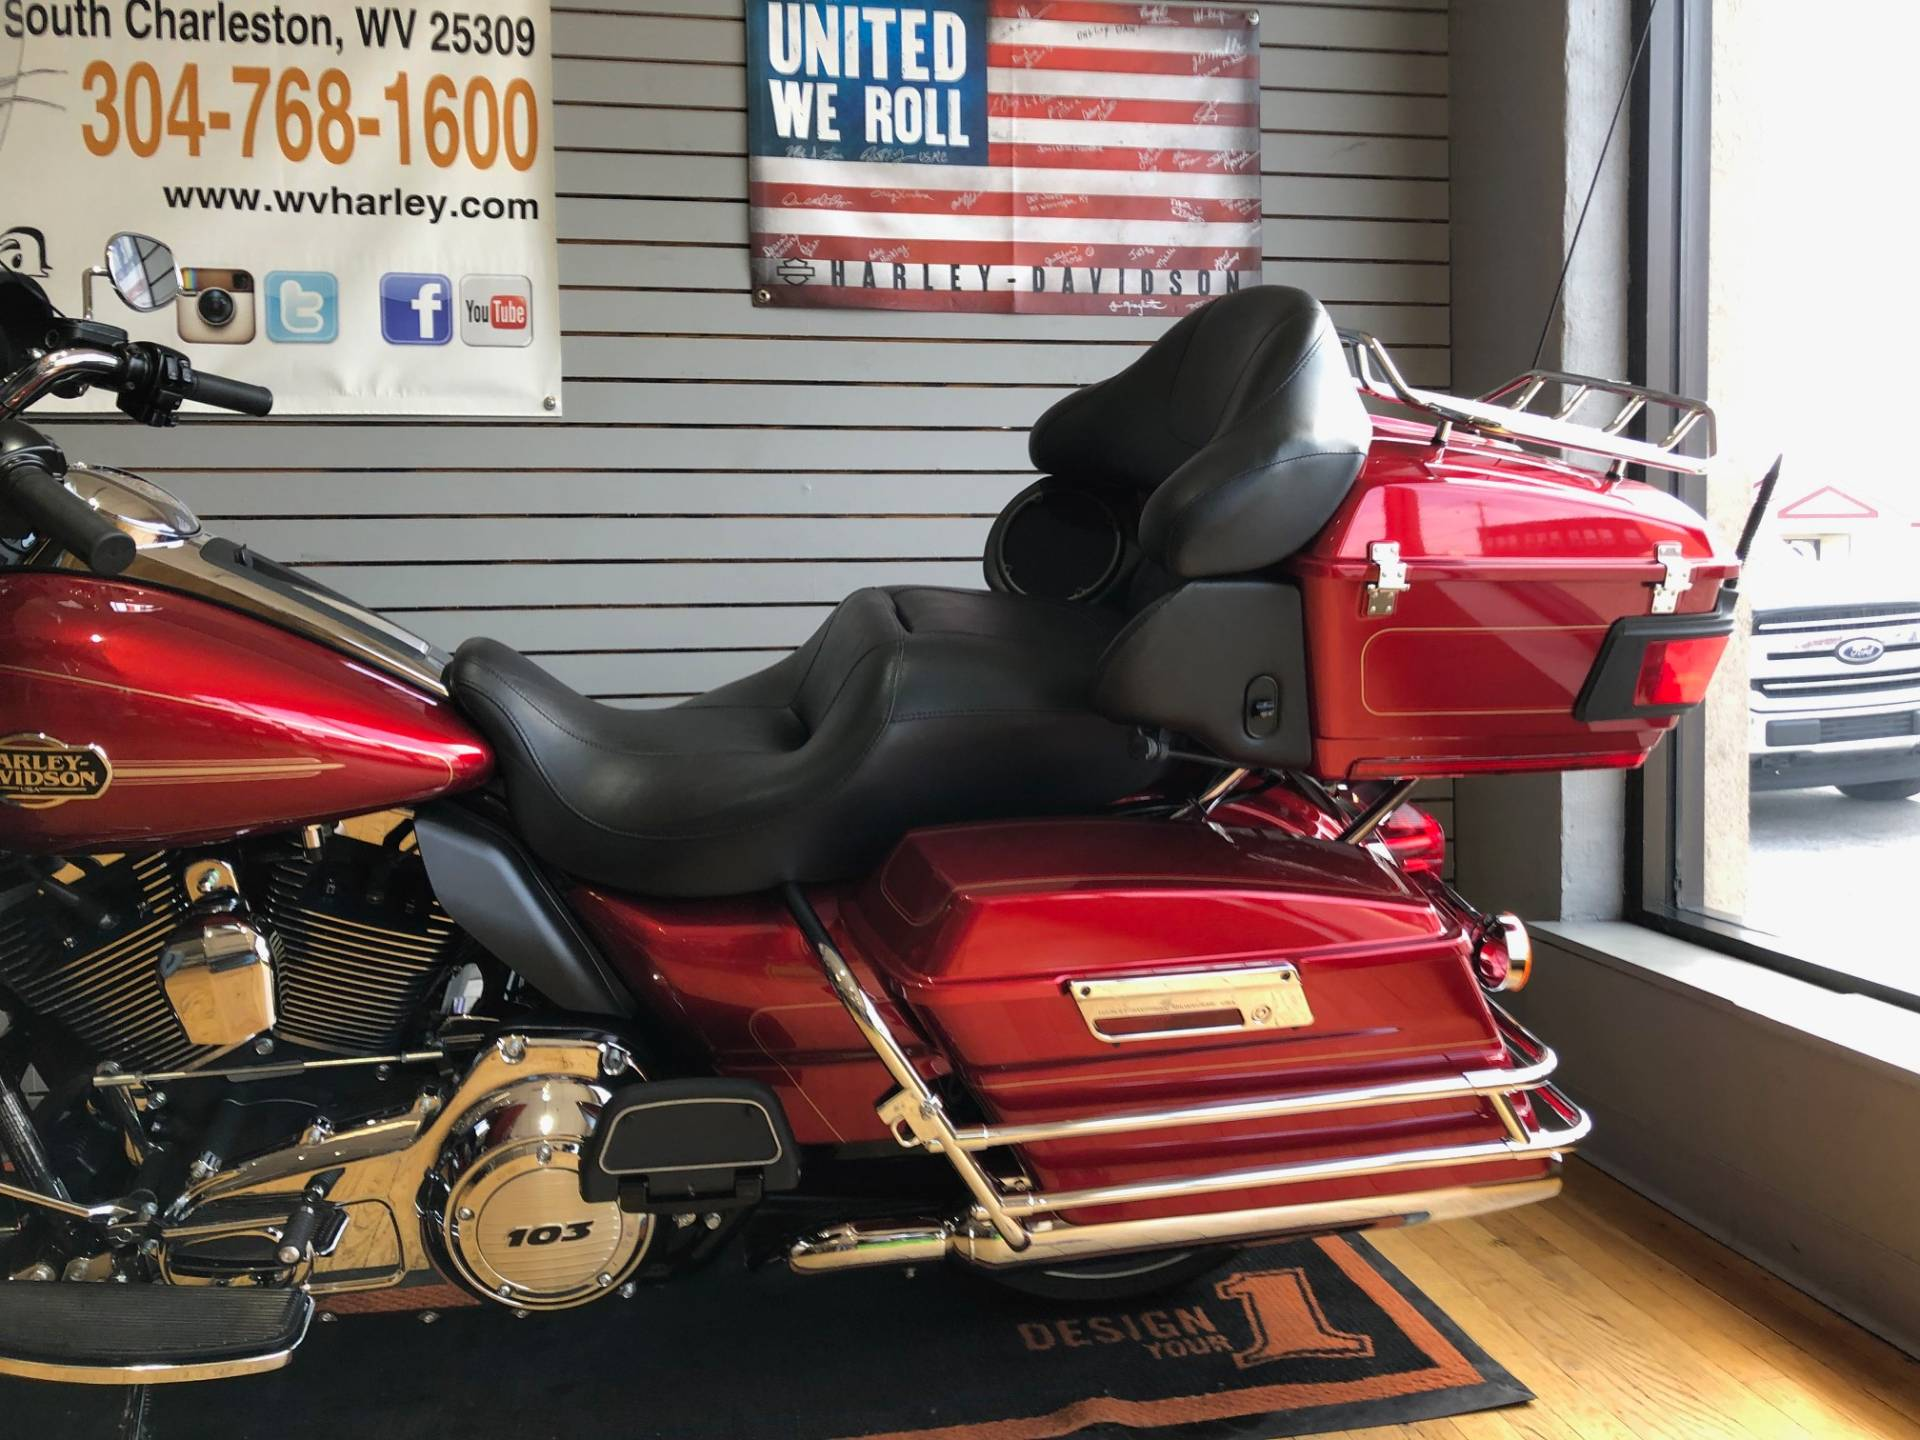 2012 Harley-Davidson Ultra Classic® Electra Glide® in South Charleston, West Virginia - Photo 6